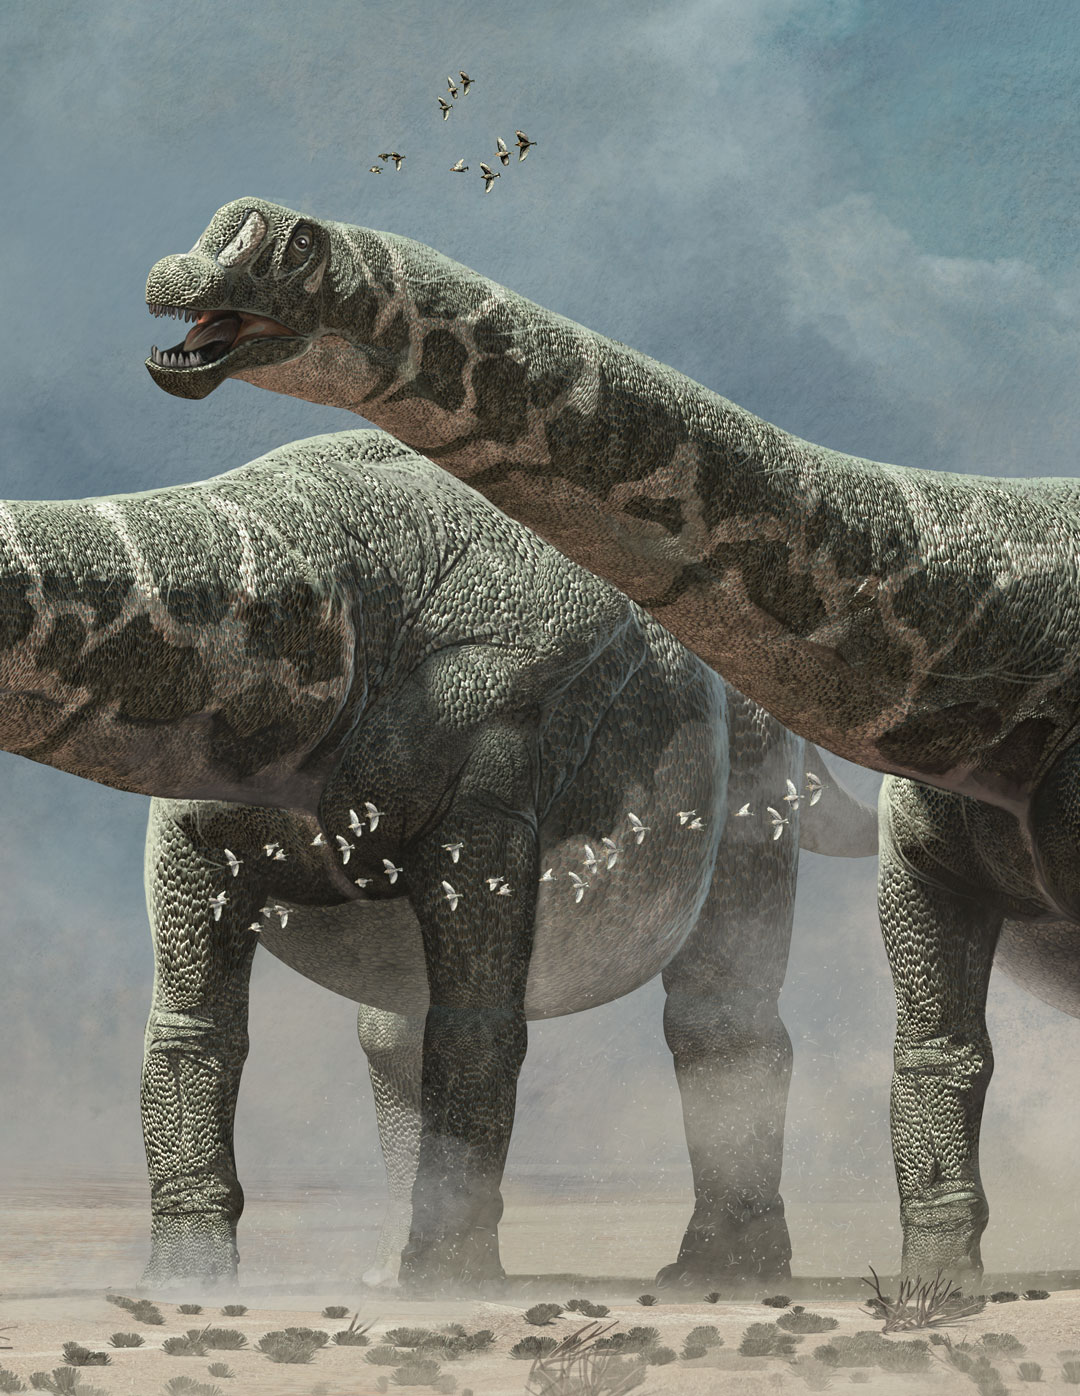 The biggest dinosaurs ever discovered, Quo Magazine November 2014. Detail of the dinosaurs. Art by Román García Mora.